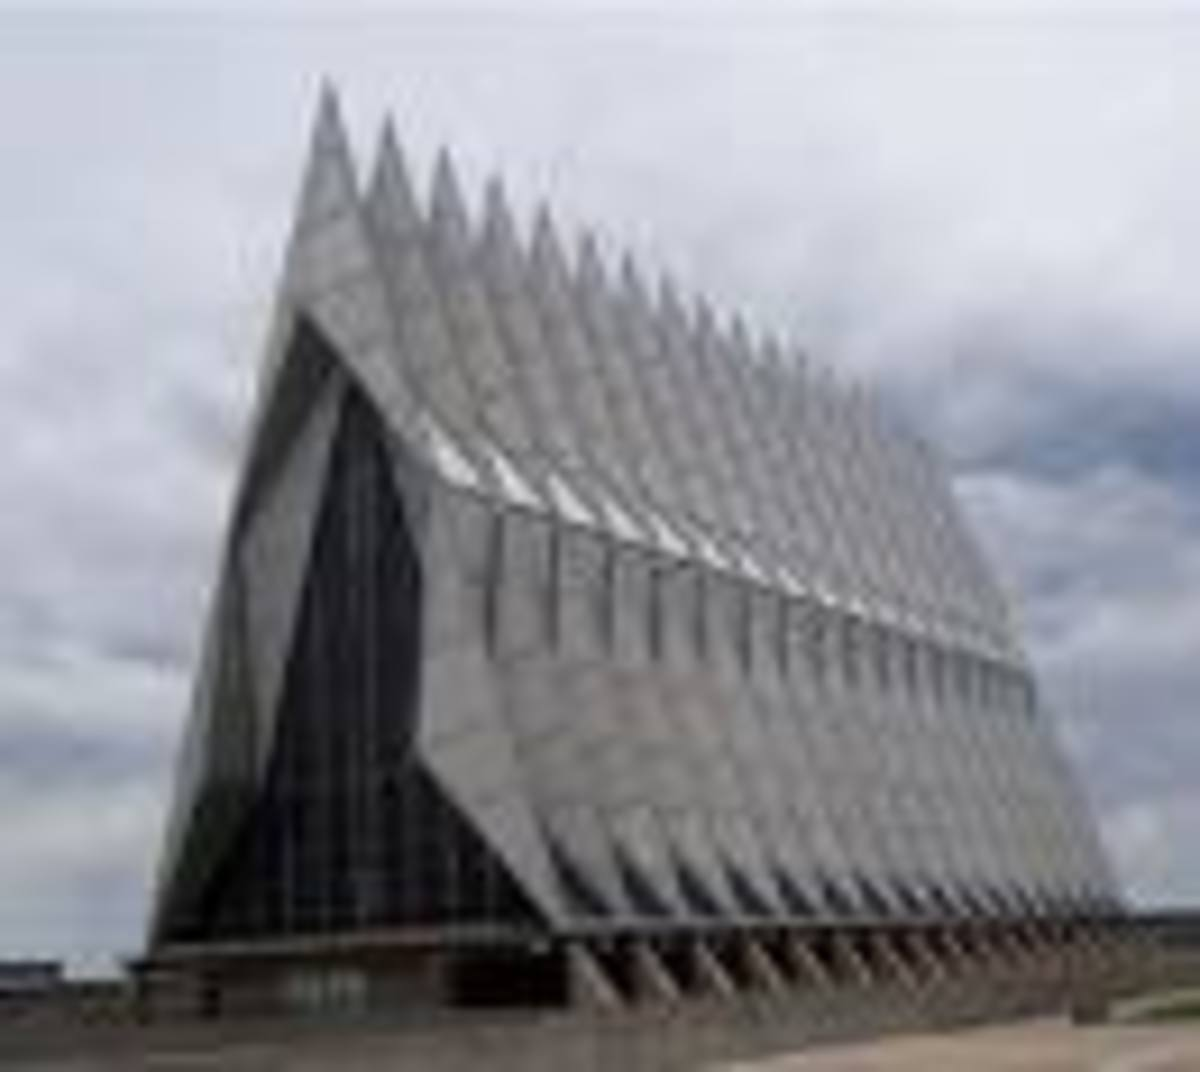 The Cadets Chapel, United States Air Force Academy, Colorado Springs, Colorado